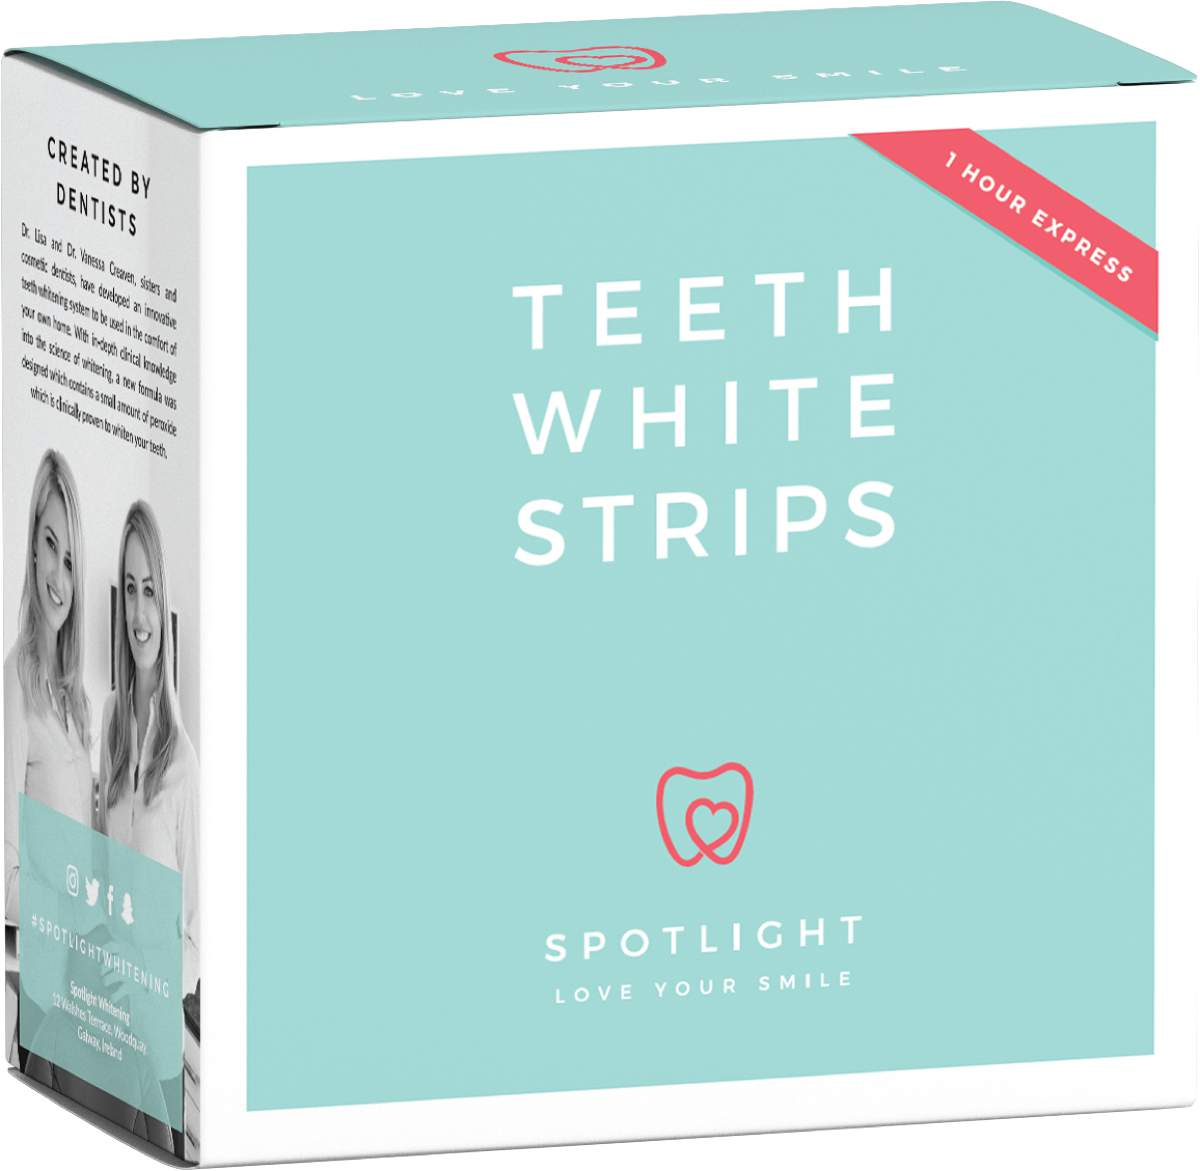 Spotlight Strips Box